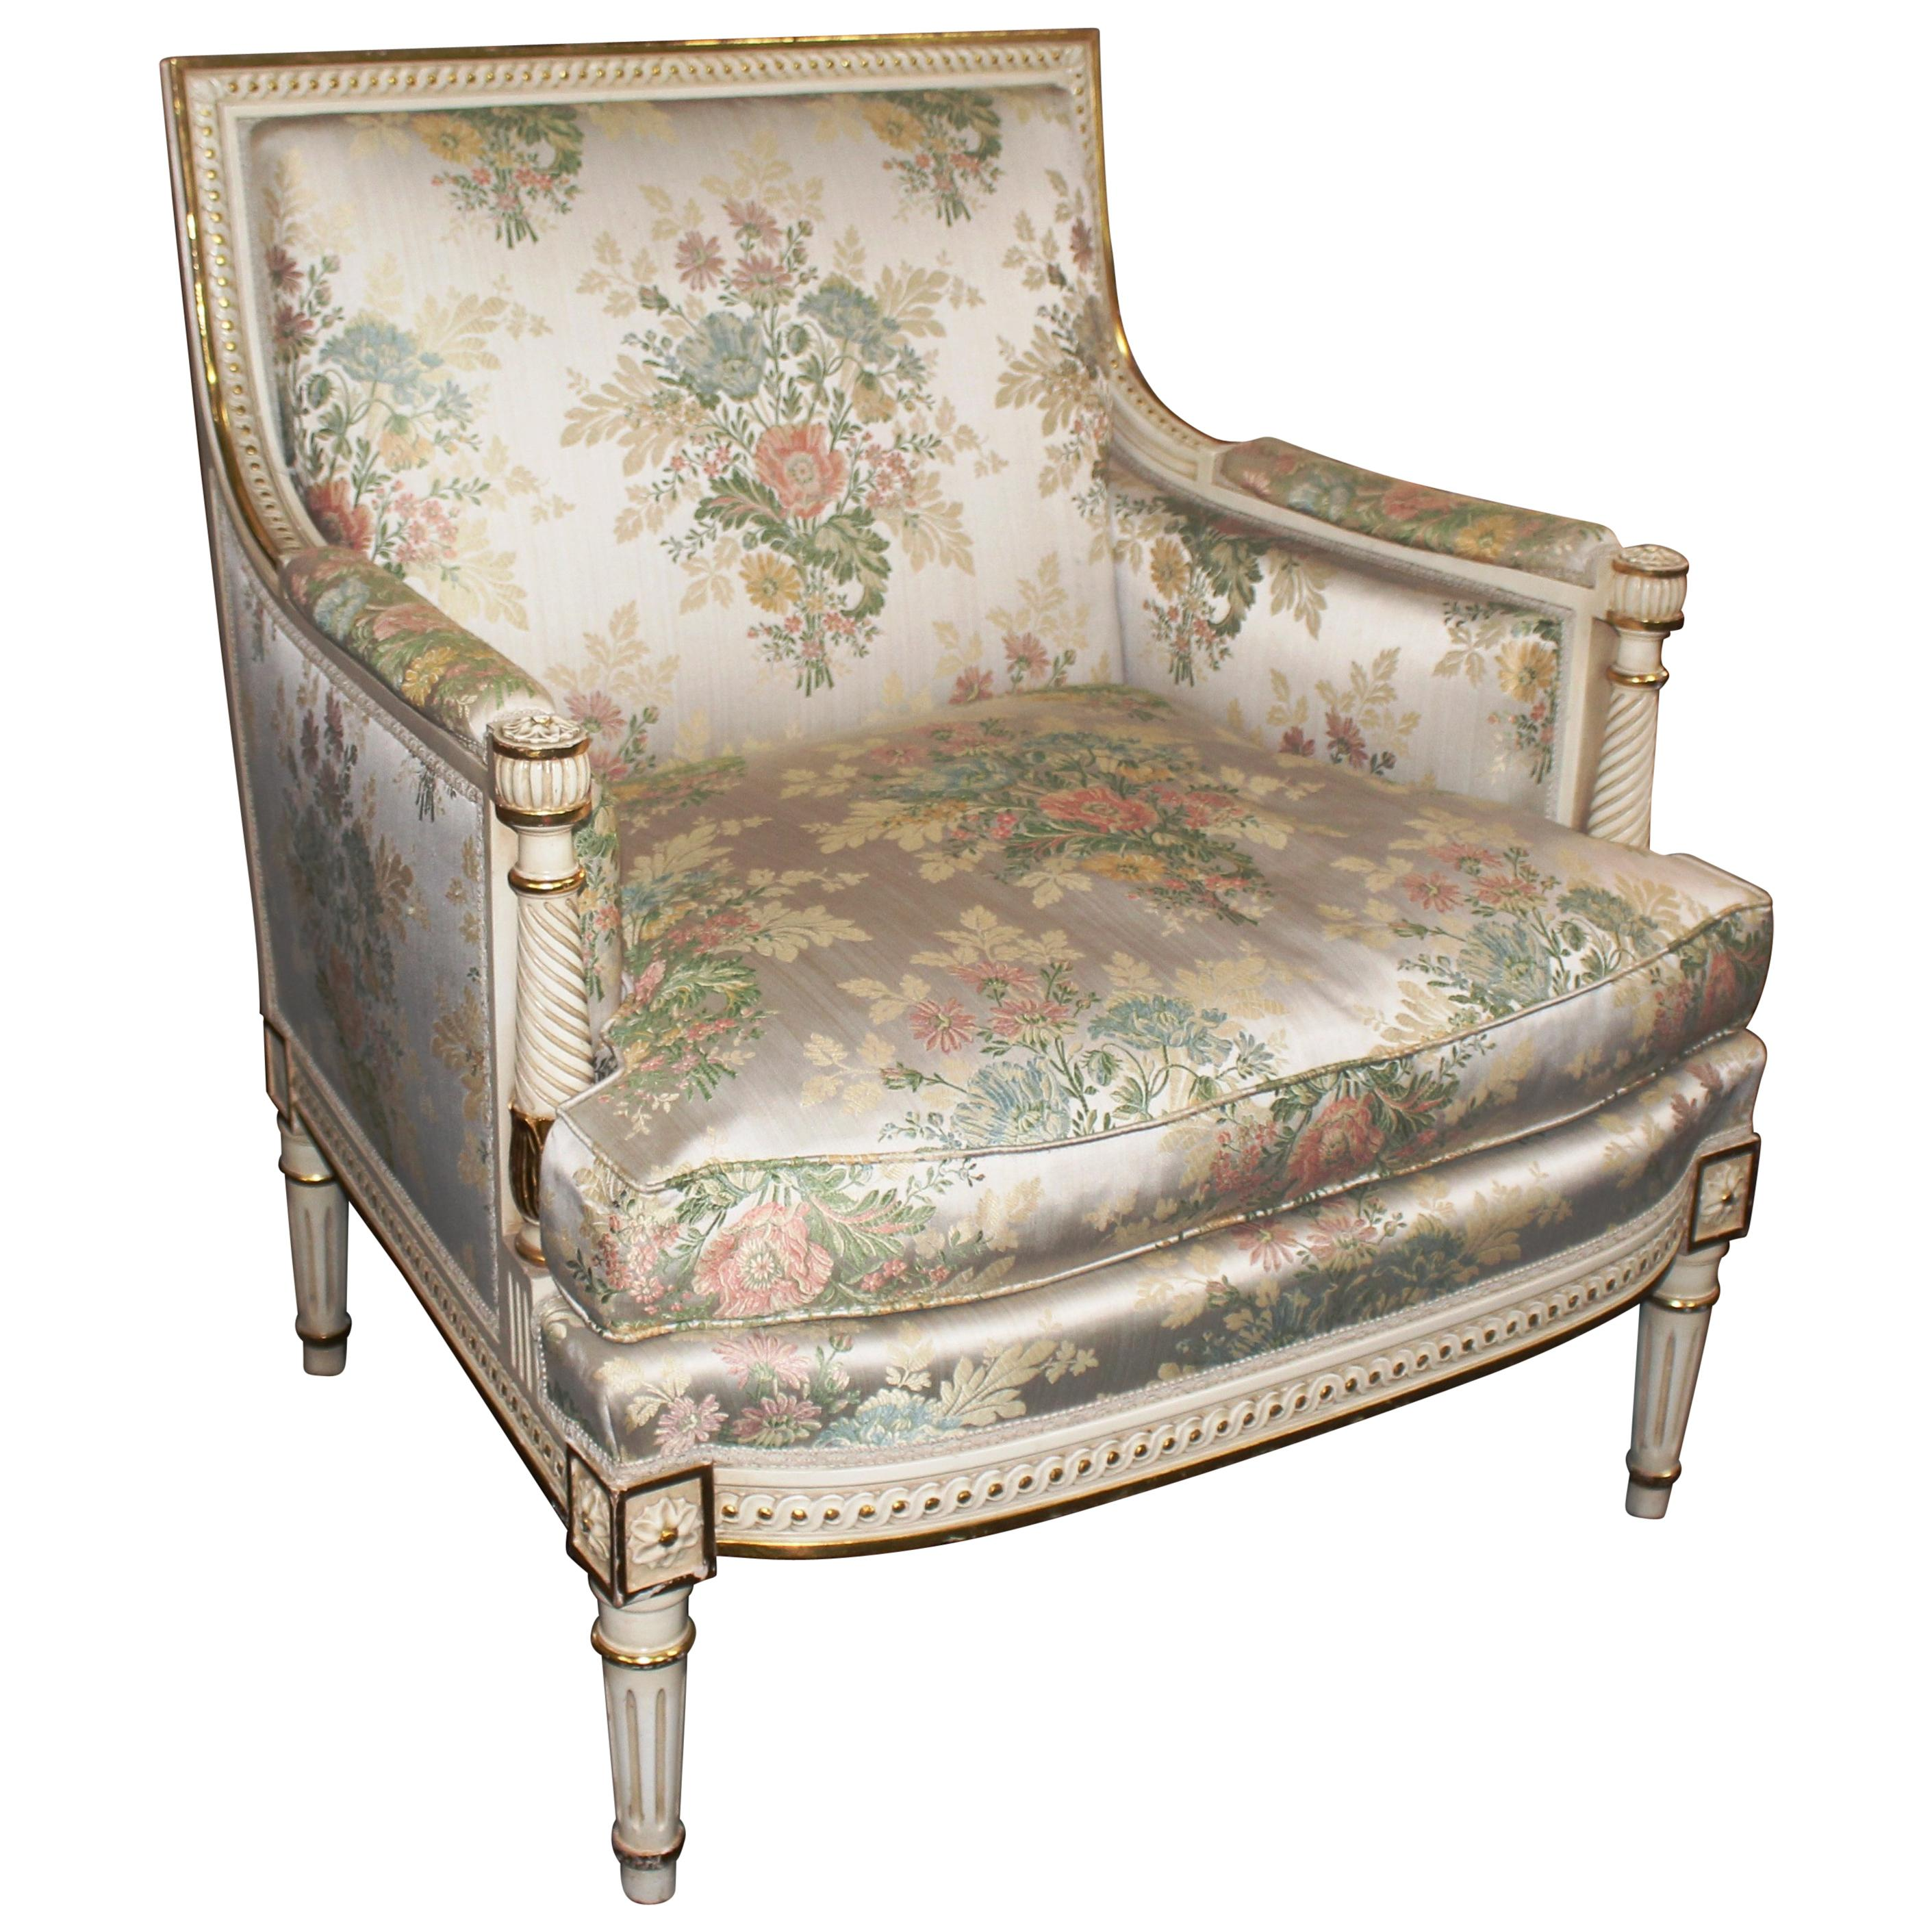 floral upholstered chair folding with side table quality carved wood cream and gilt armchair for sale